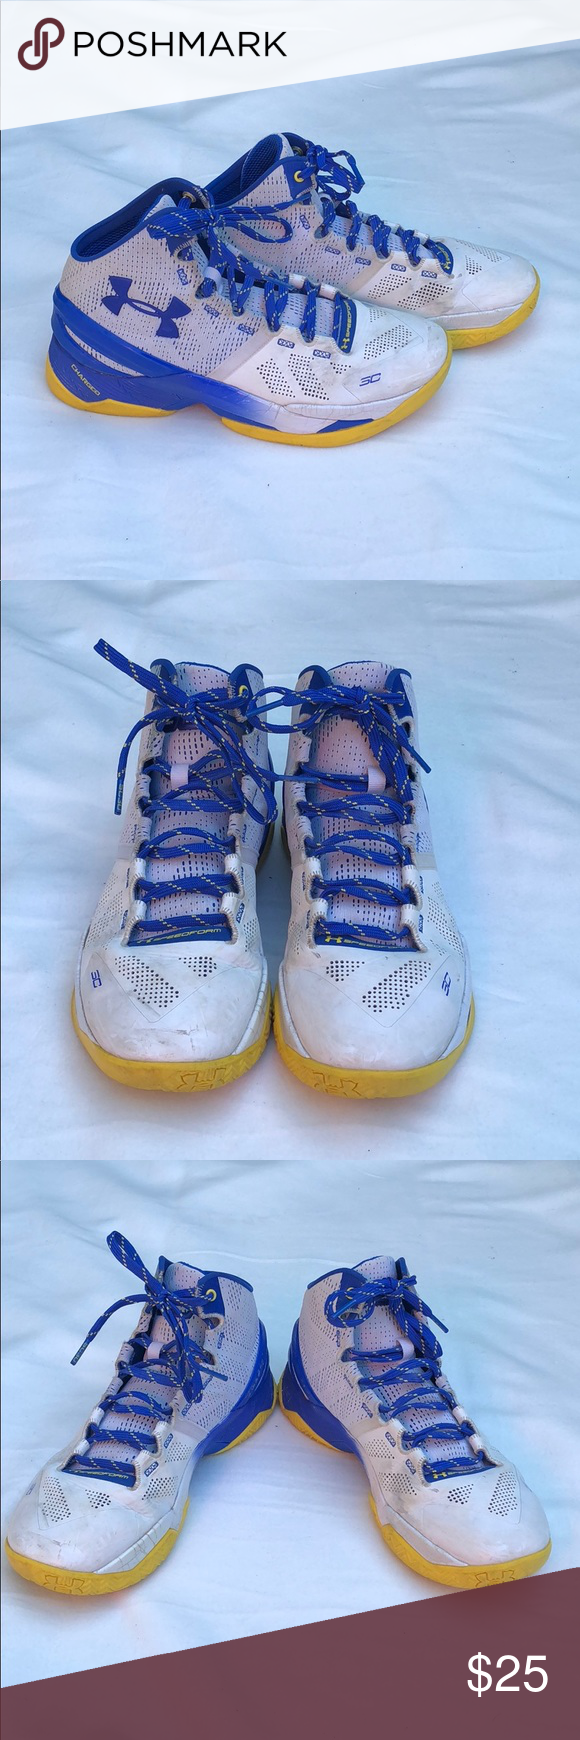 """brand new 429a2 3c68c Under Armour Curry 2 """"Dub Nation Home"""" Size 8.5 Used in good ..."""